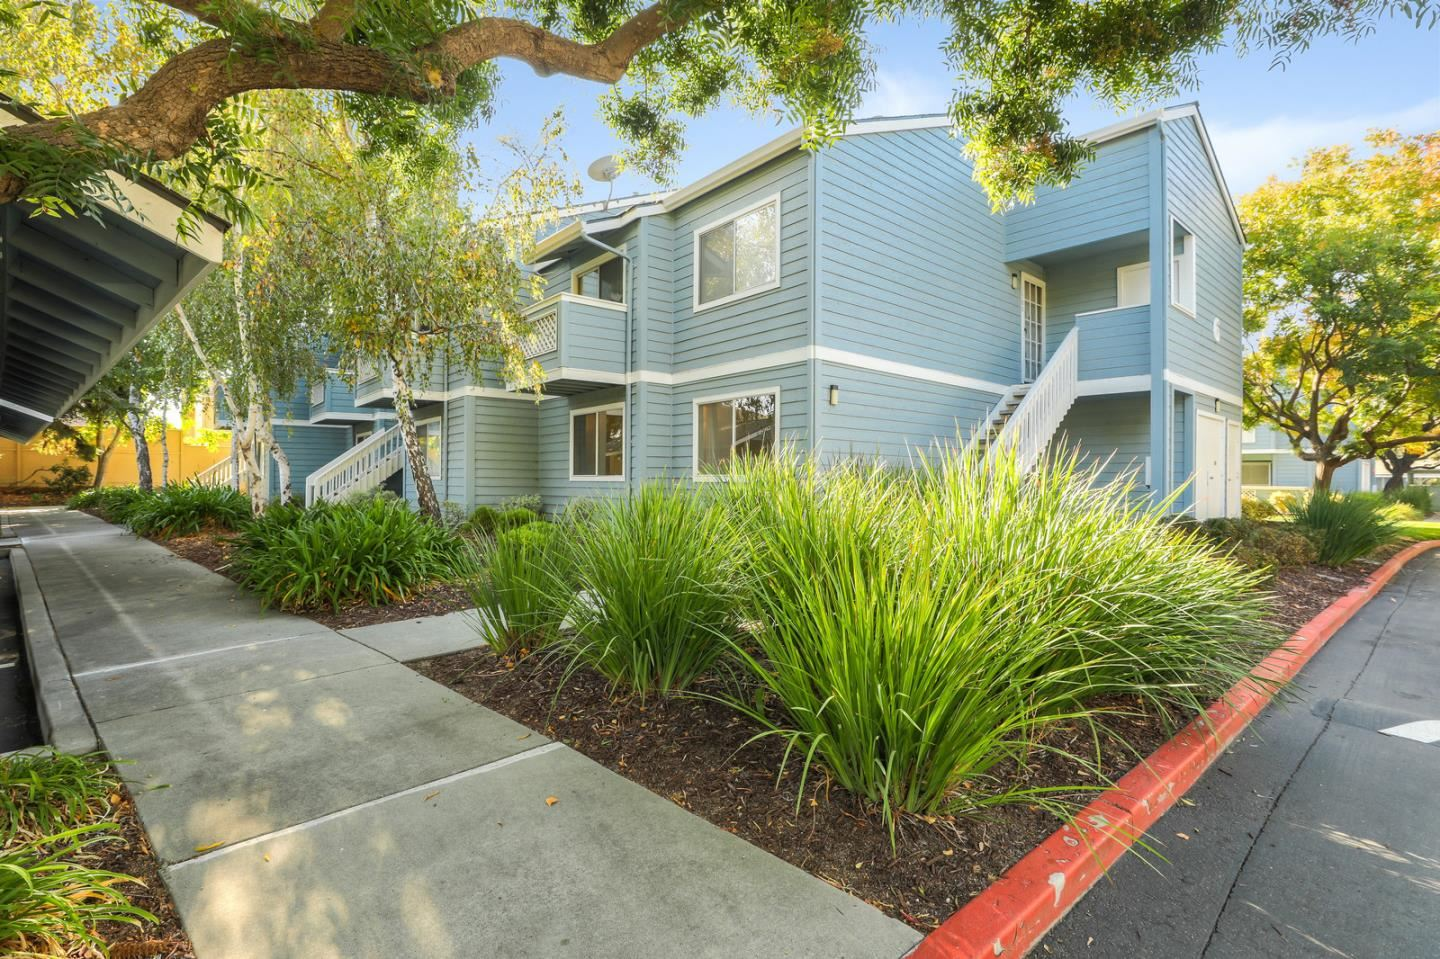 Photo for 1578 Four Oaks CIR, SAN JOSE, CA 95131 (MLS # ML81775073)